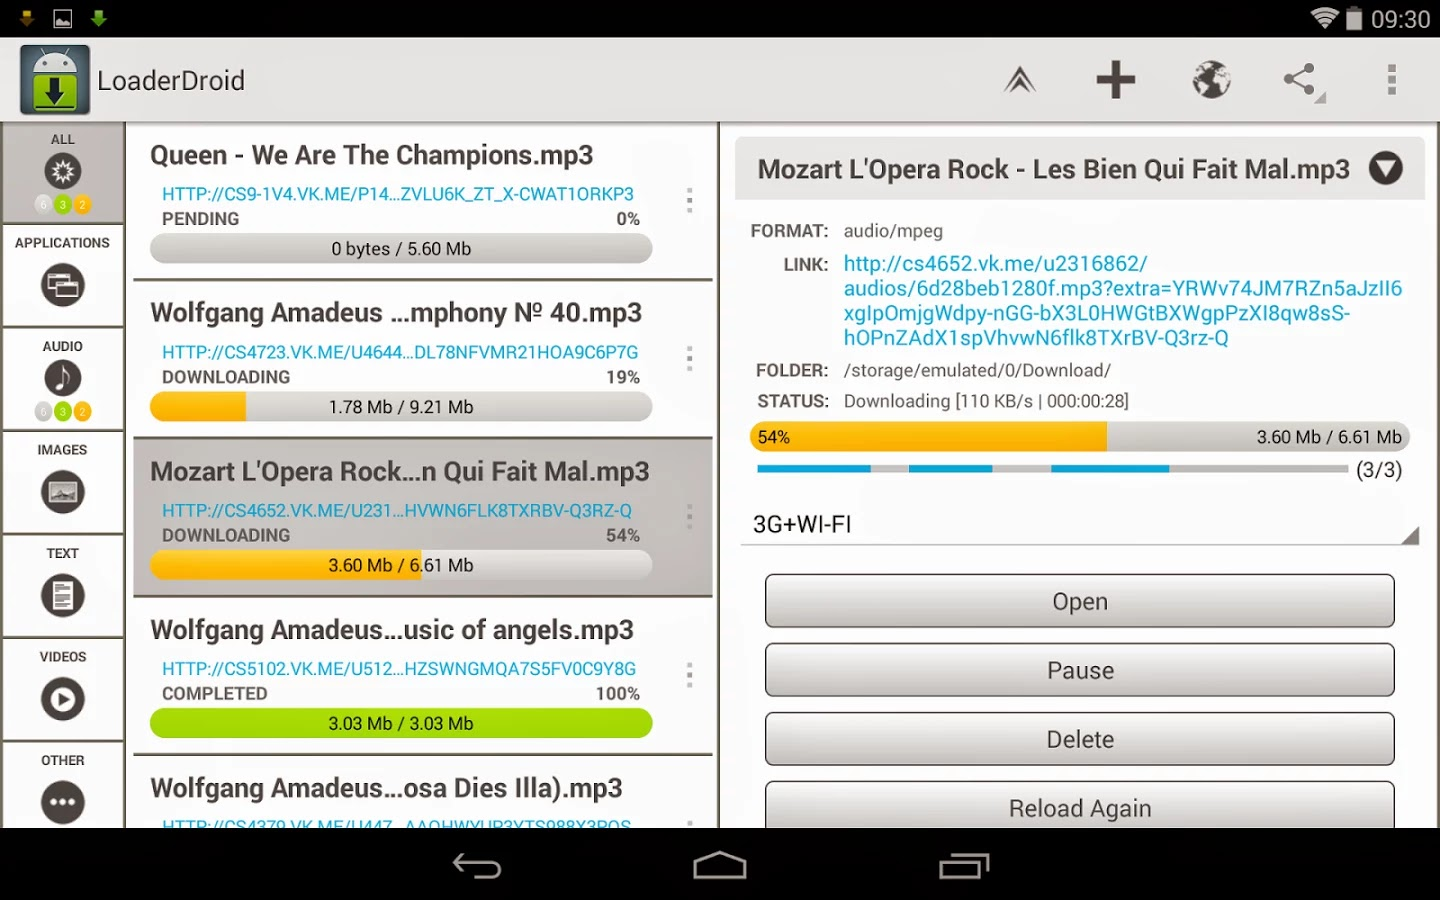 Loader Droid PRO download manager v0.9.9.3